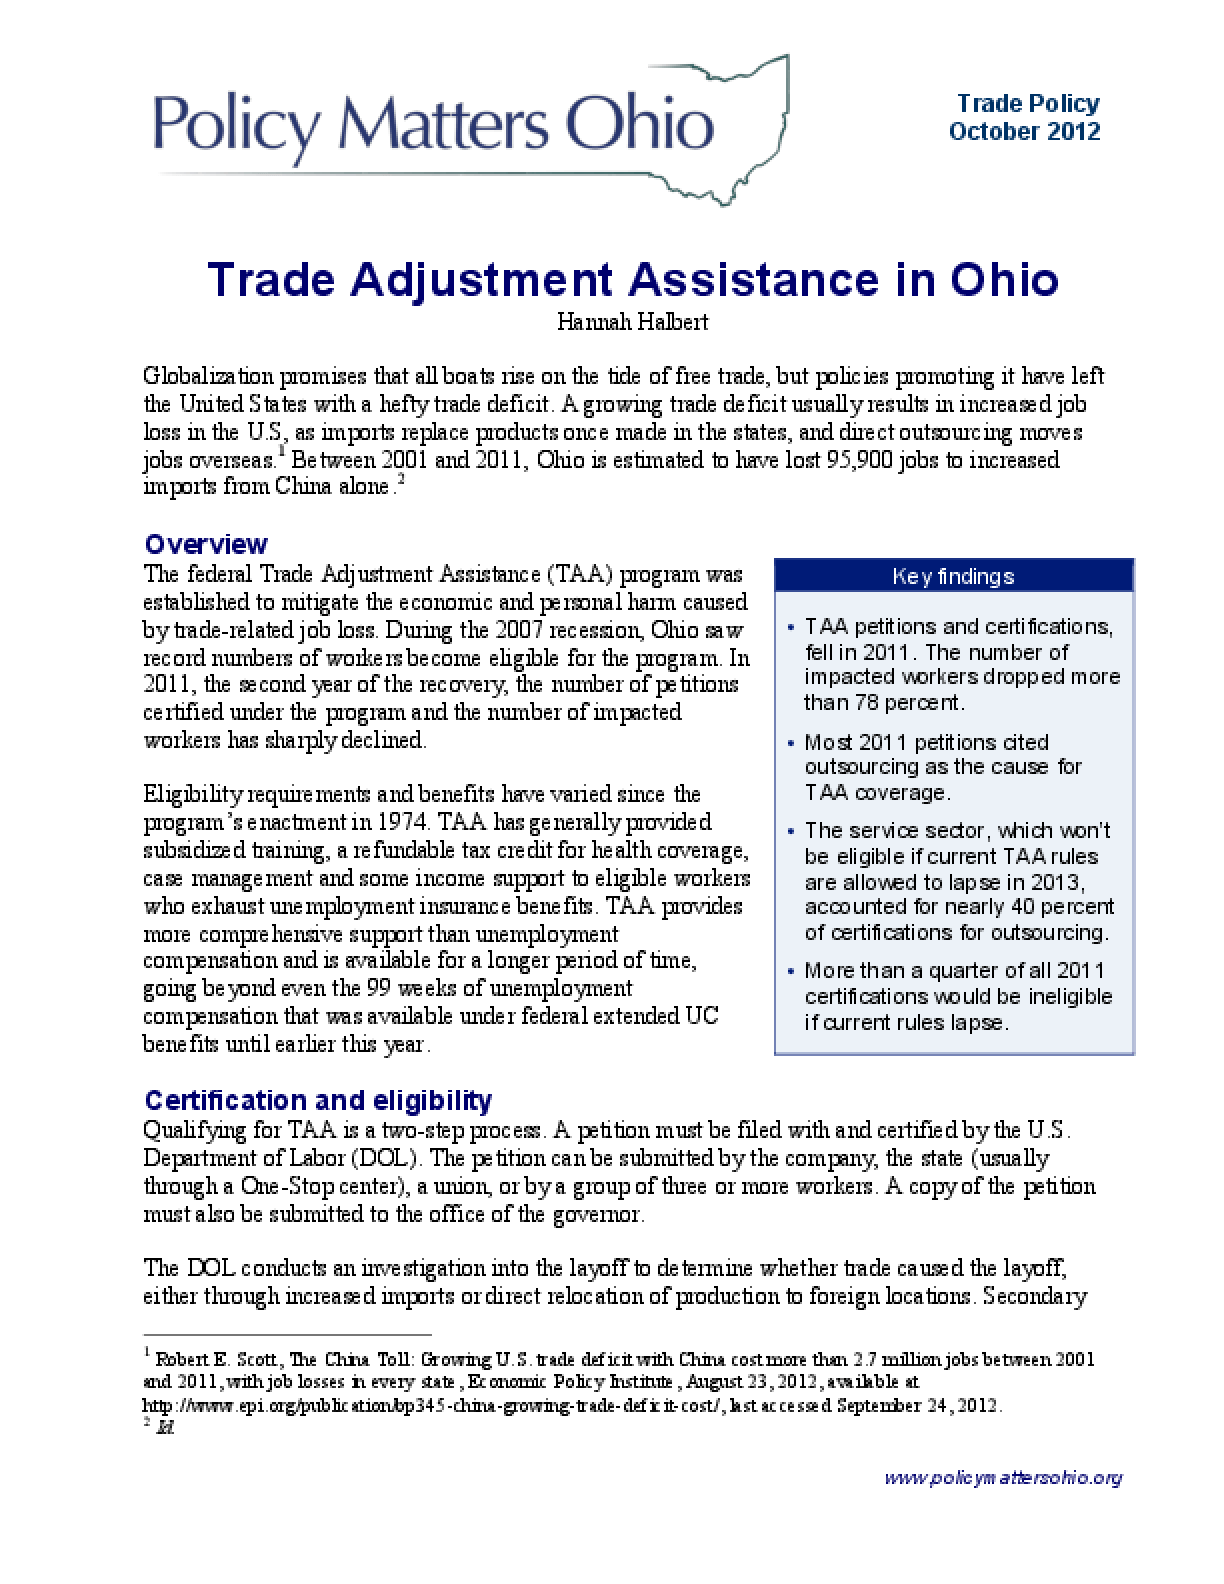 Trade Adjustment Assistance in Ohio